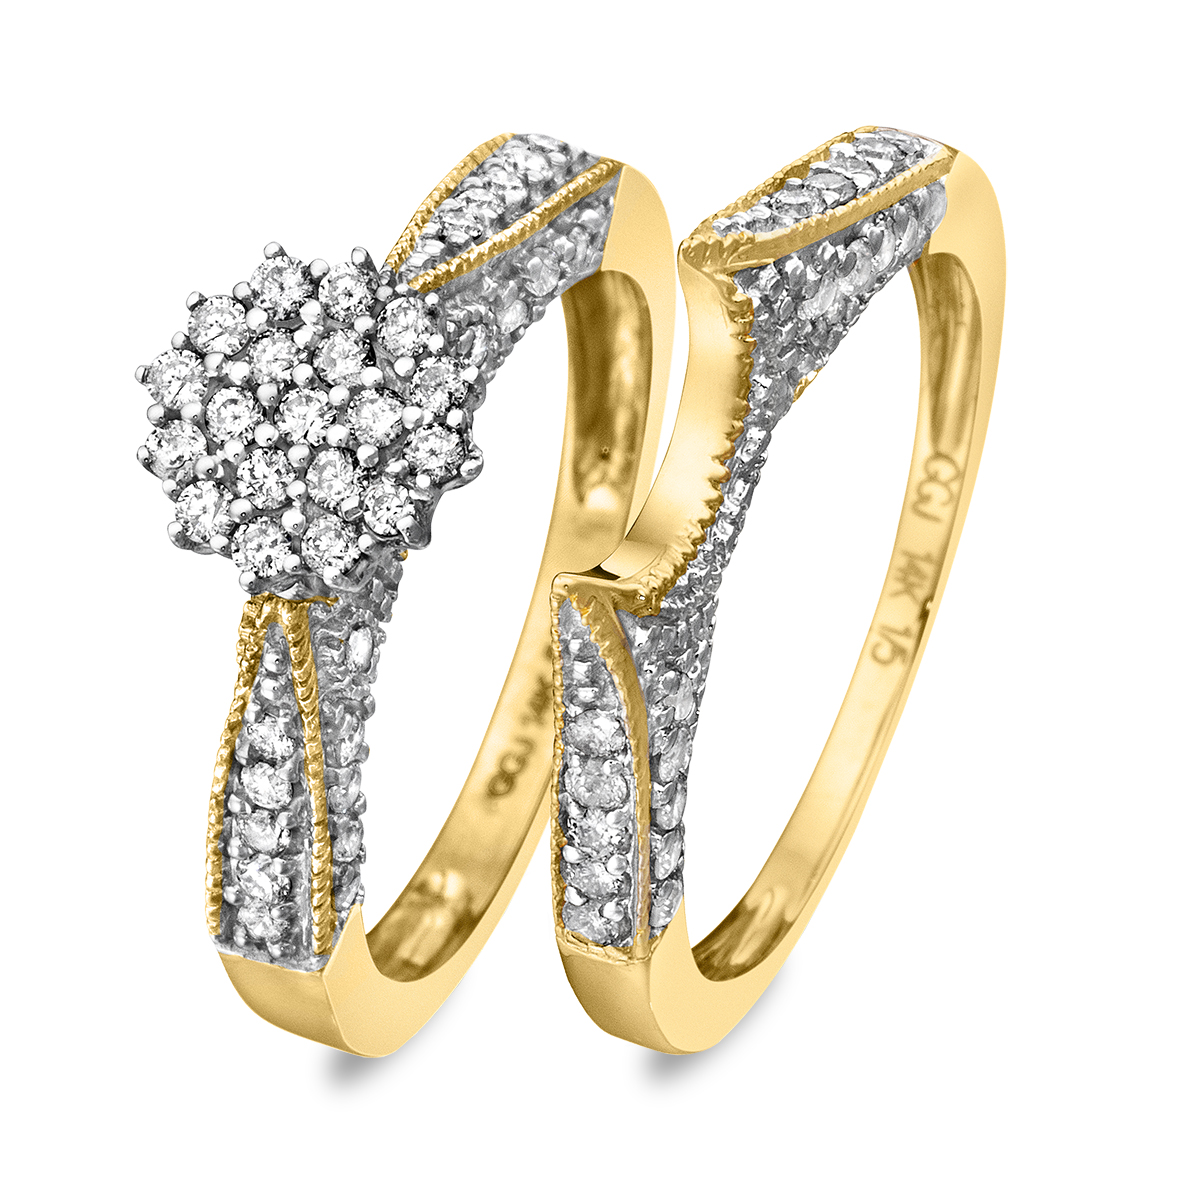 3/4 Carat Diamond Bridal Wedding Ring Set 14K Yellow Gold